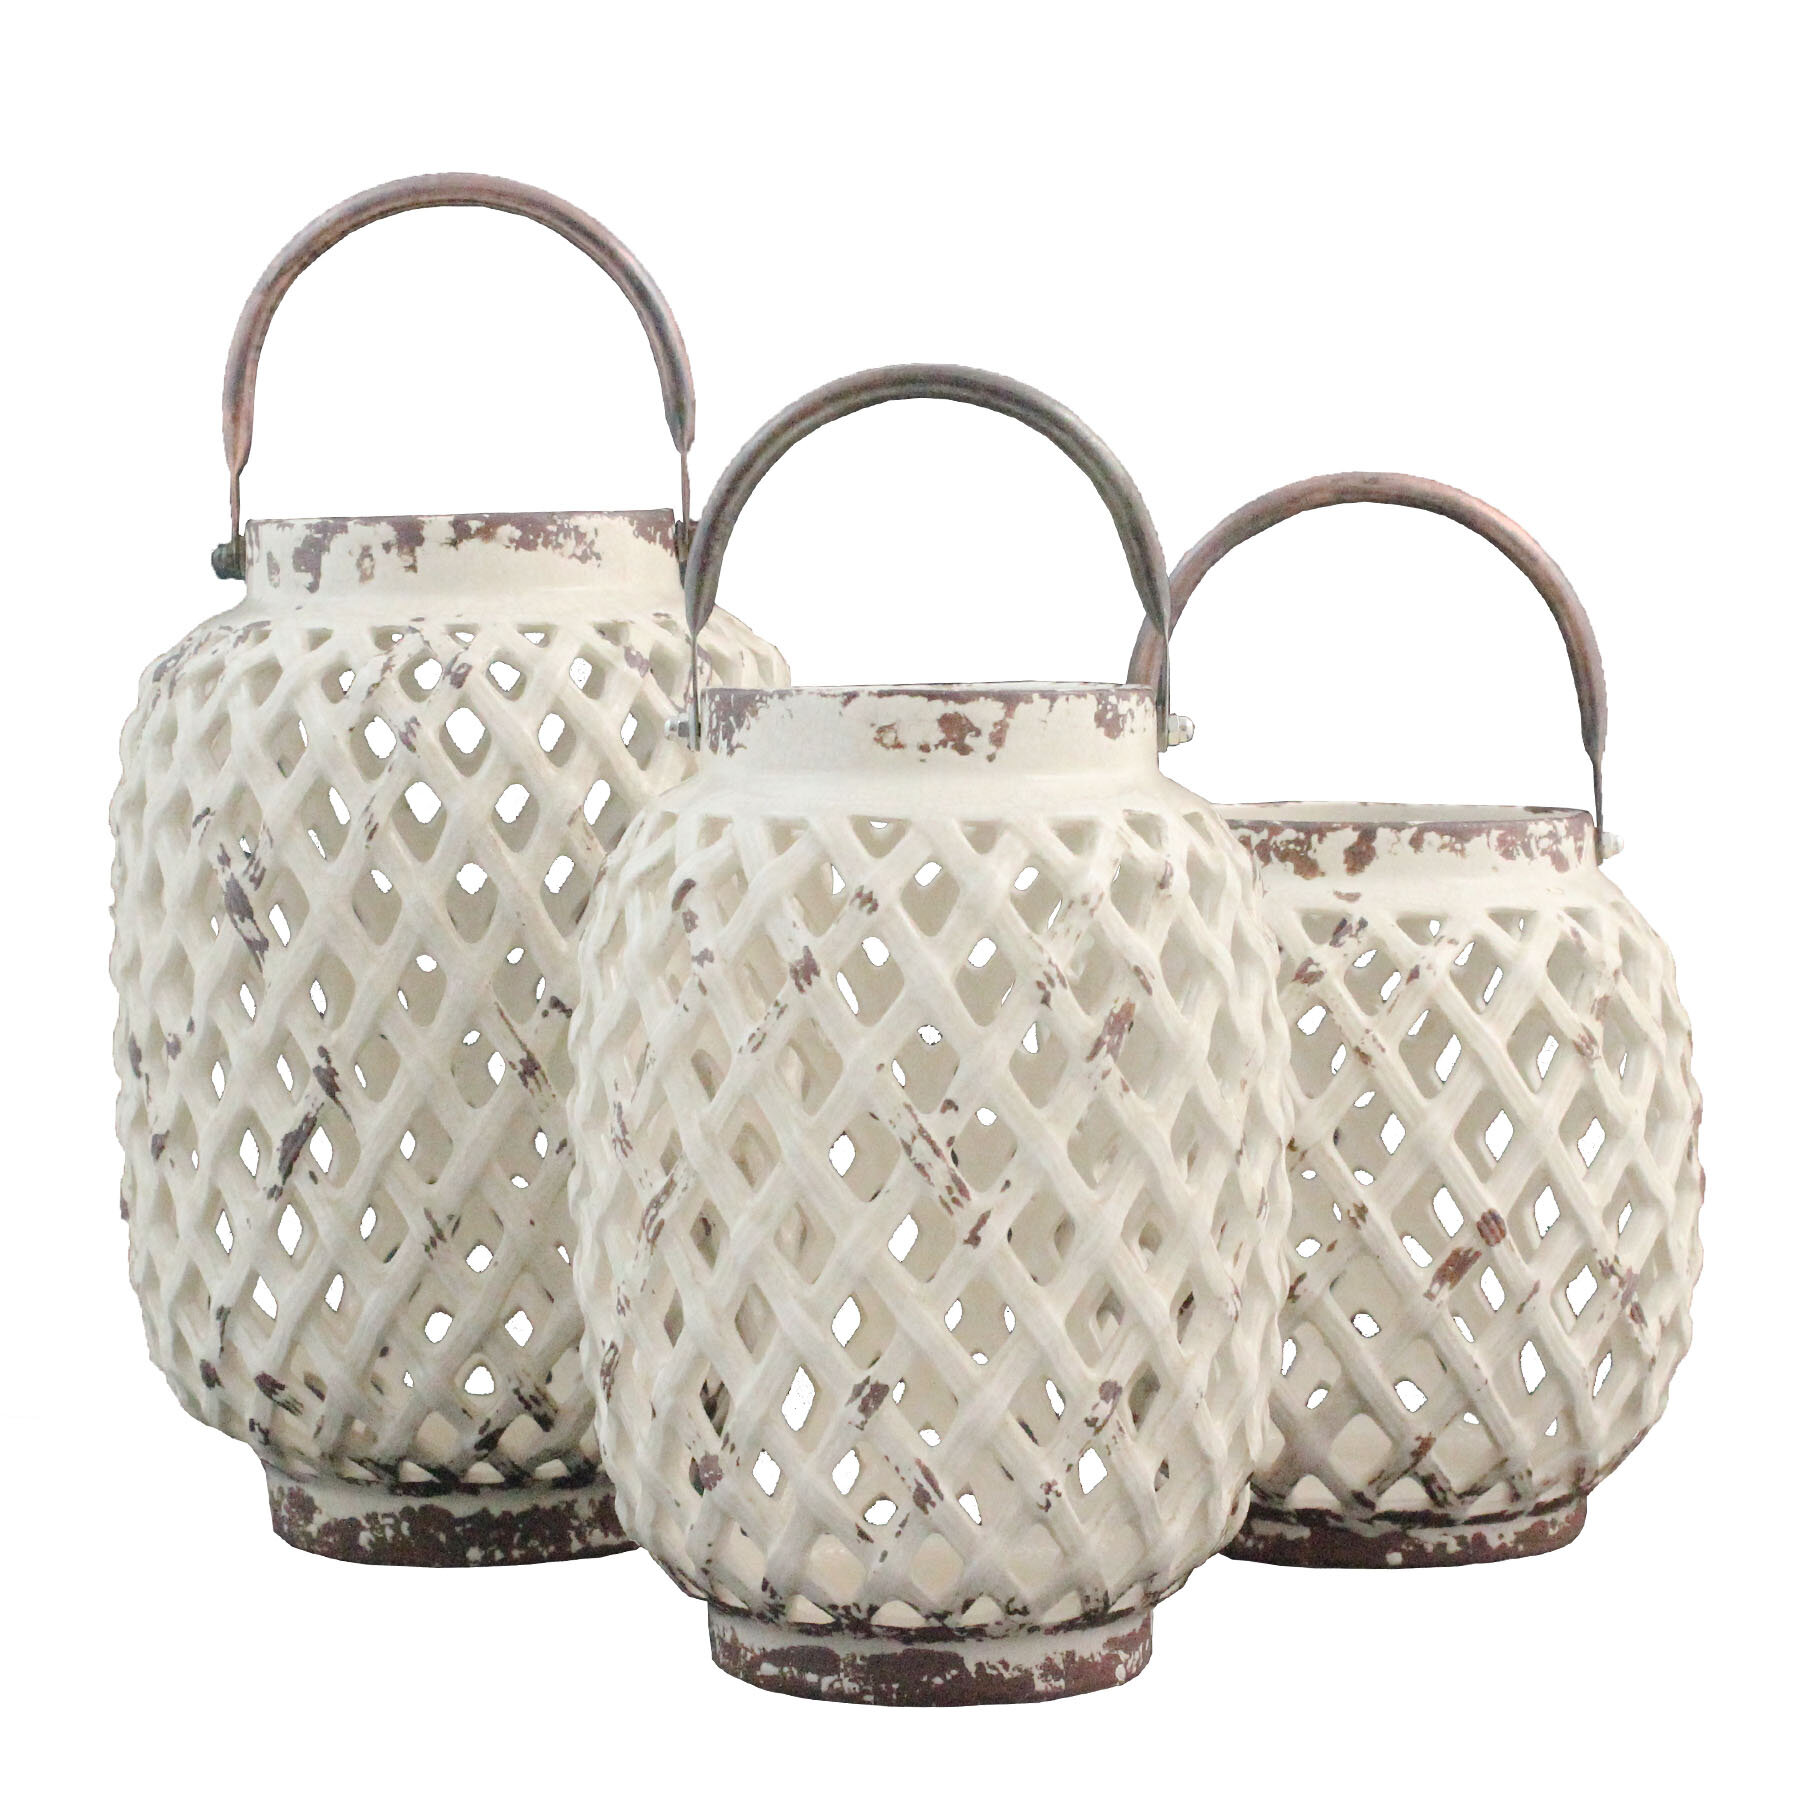 Ceramic Lantern Candle Holders You Ll Love In 2021 Wayfair